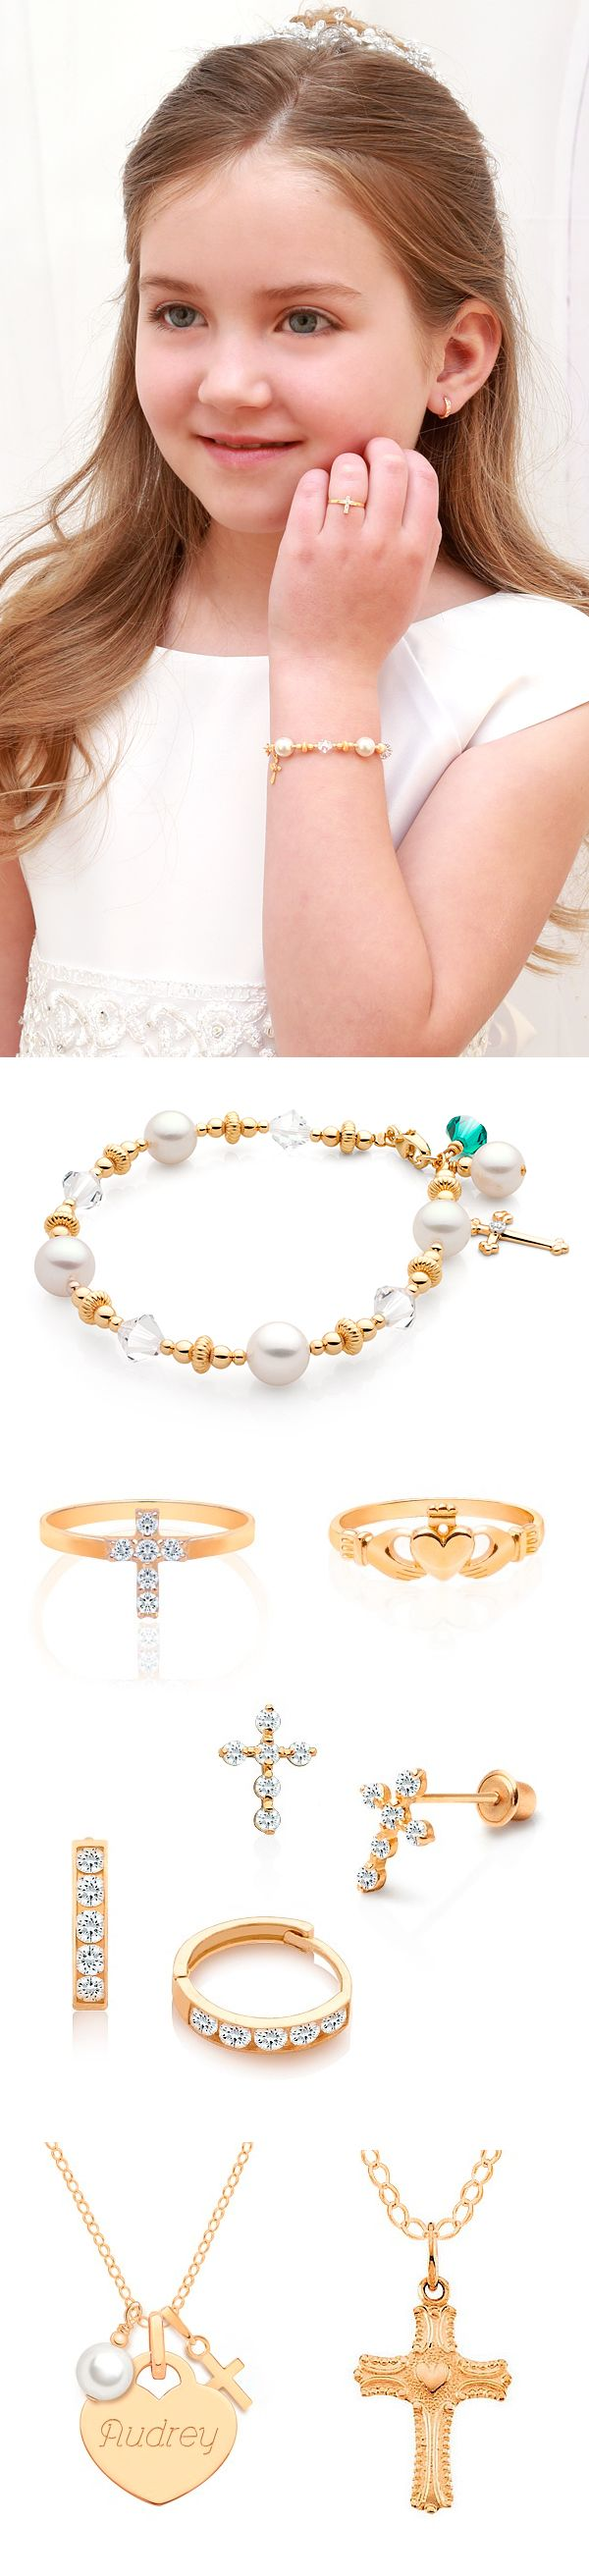 First Communion Jewelry Gifts in Solid 14K Gold. Simply Beautiful.